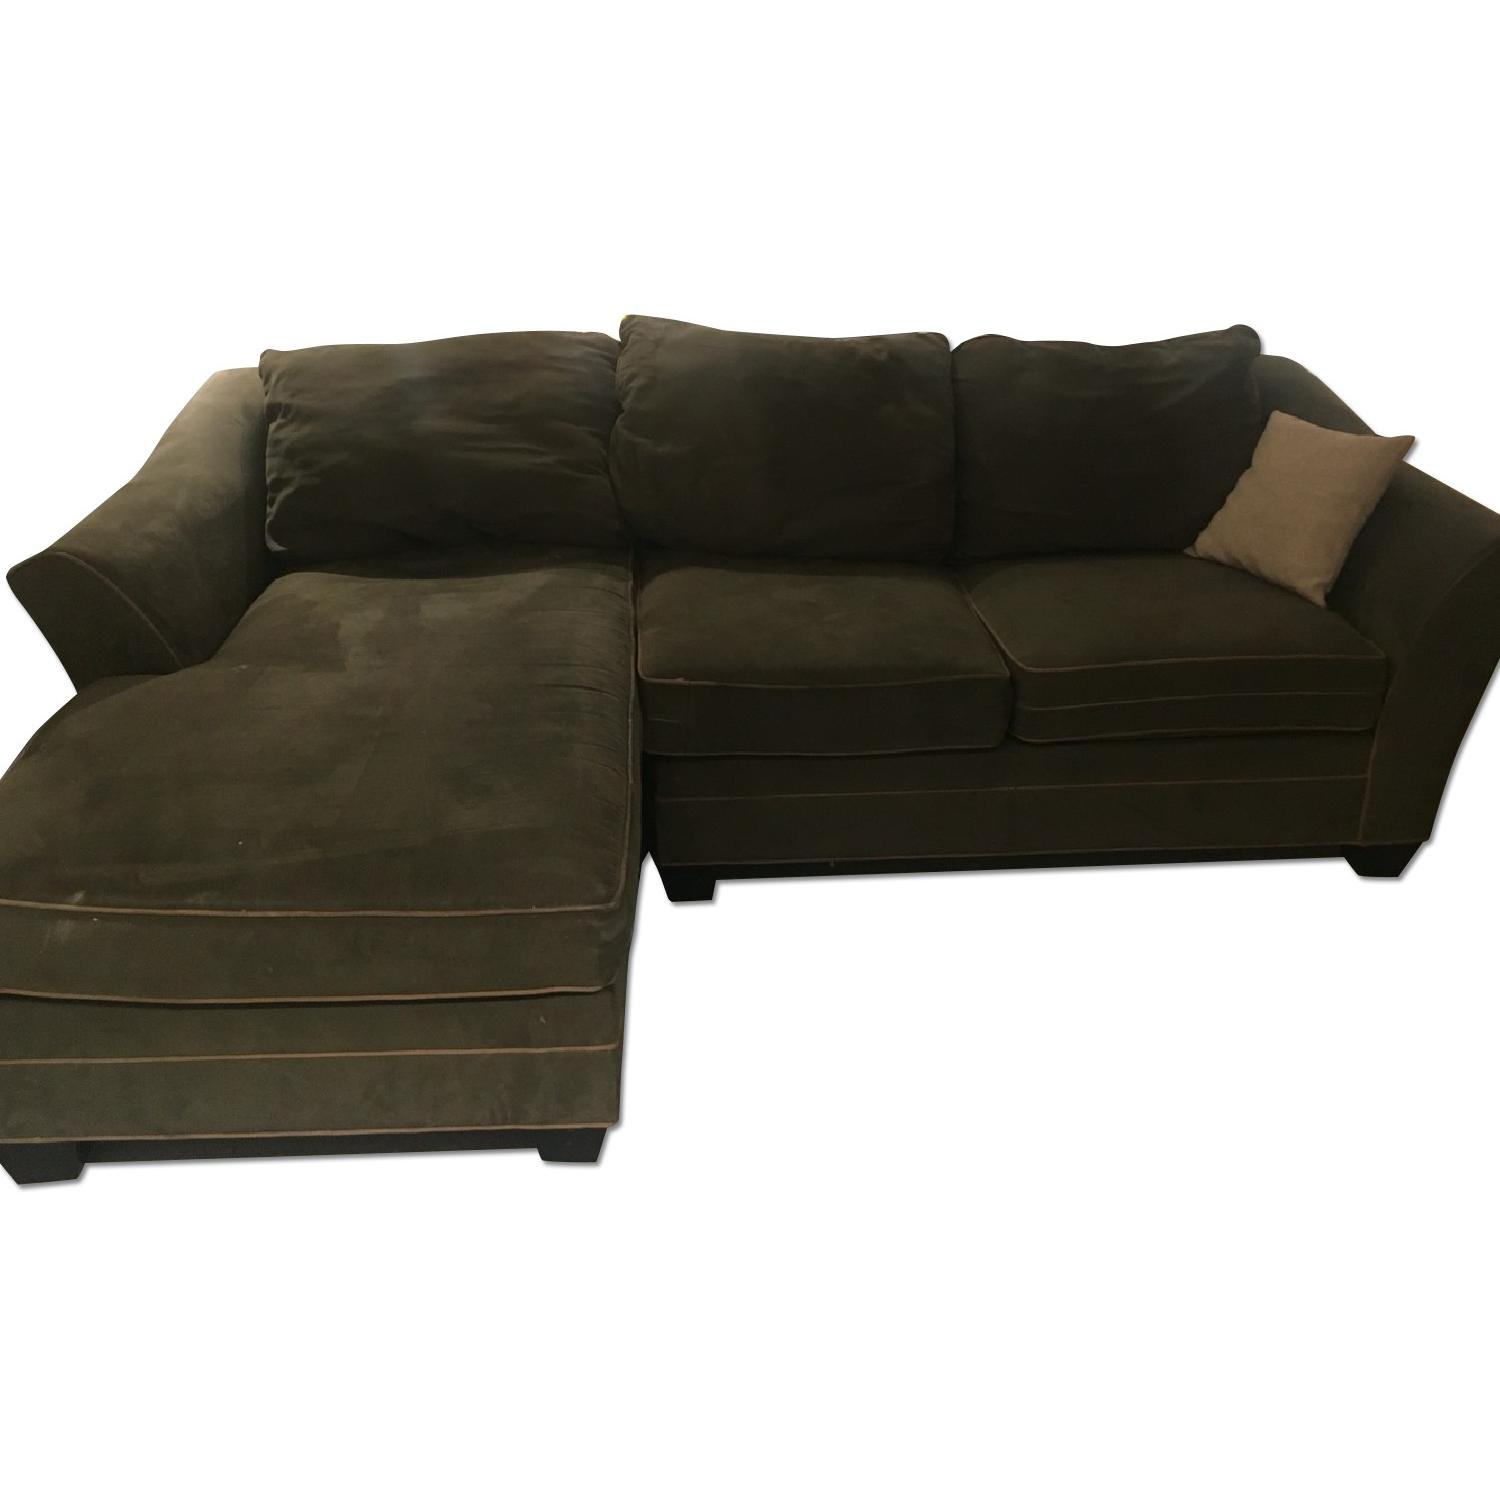 Green L Sectional Sofa - image-0